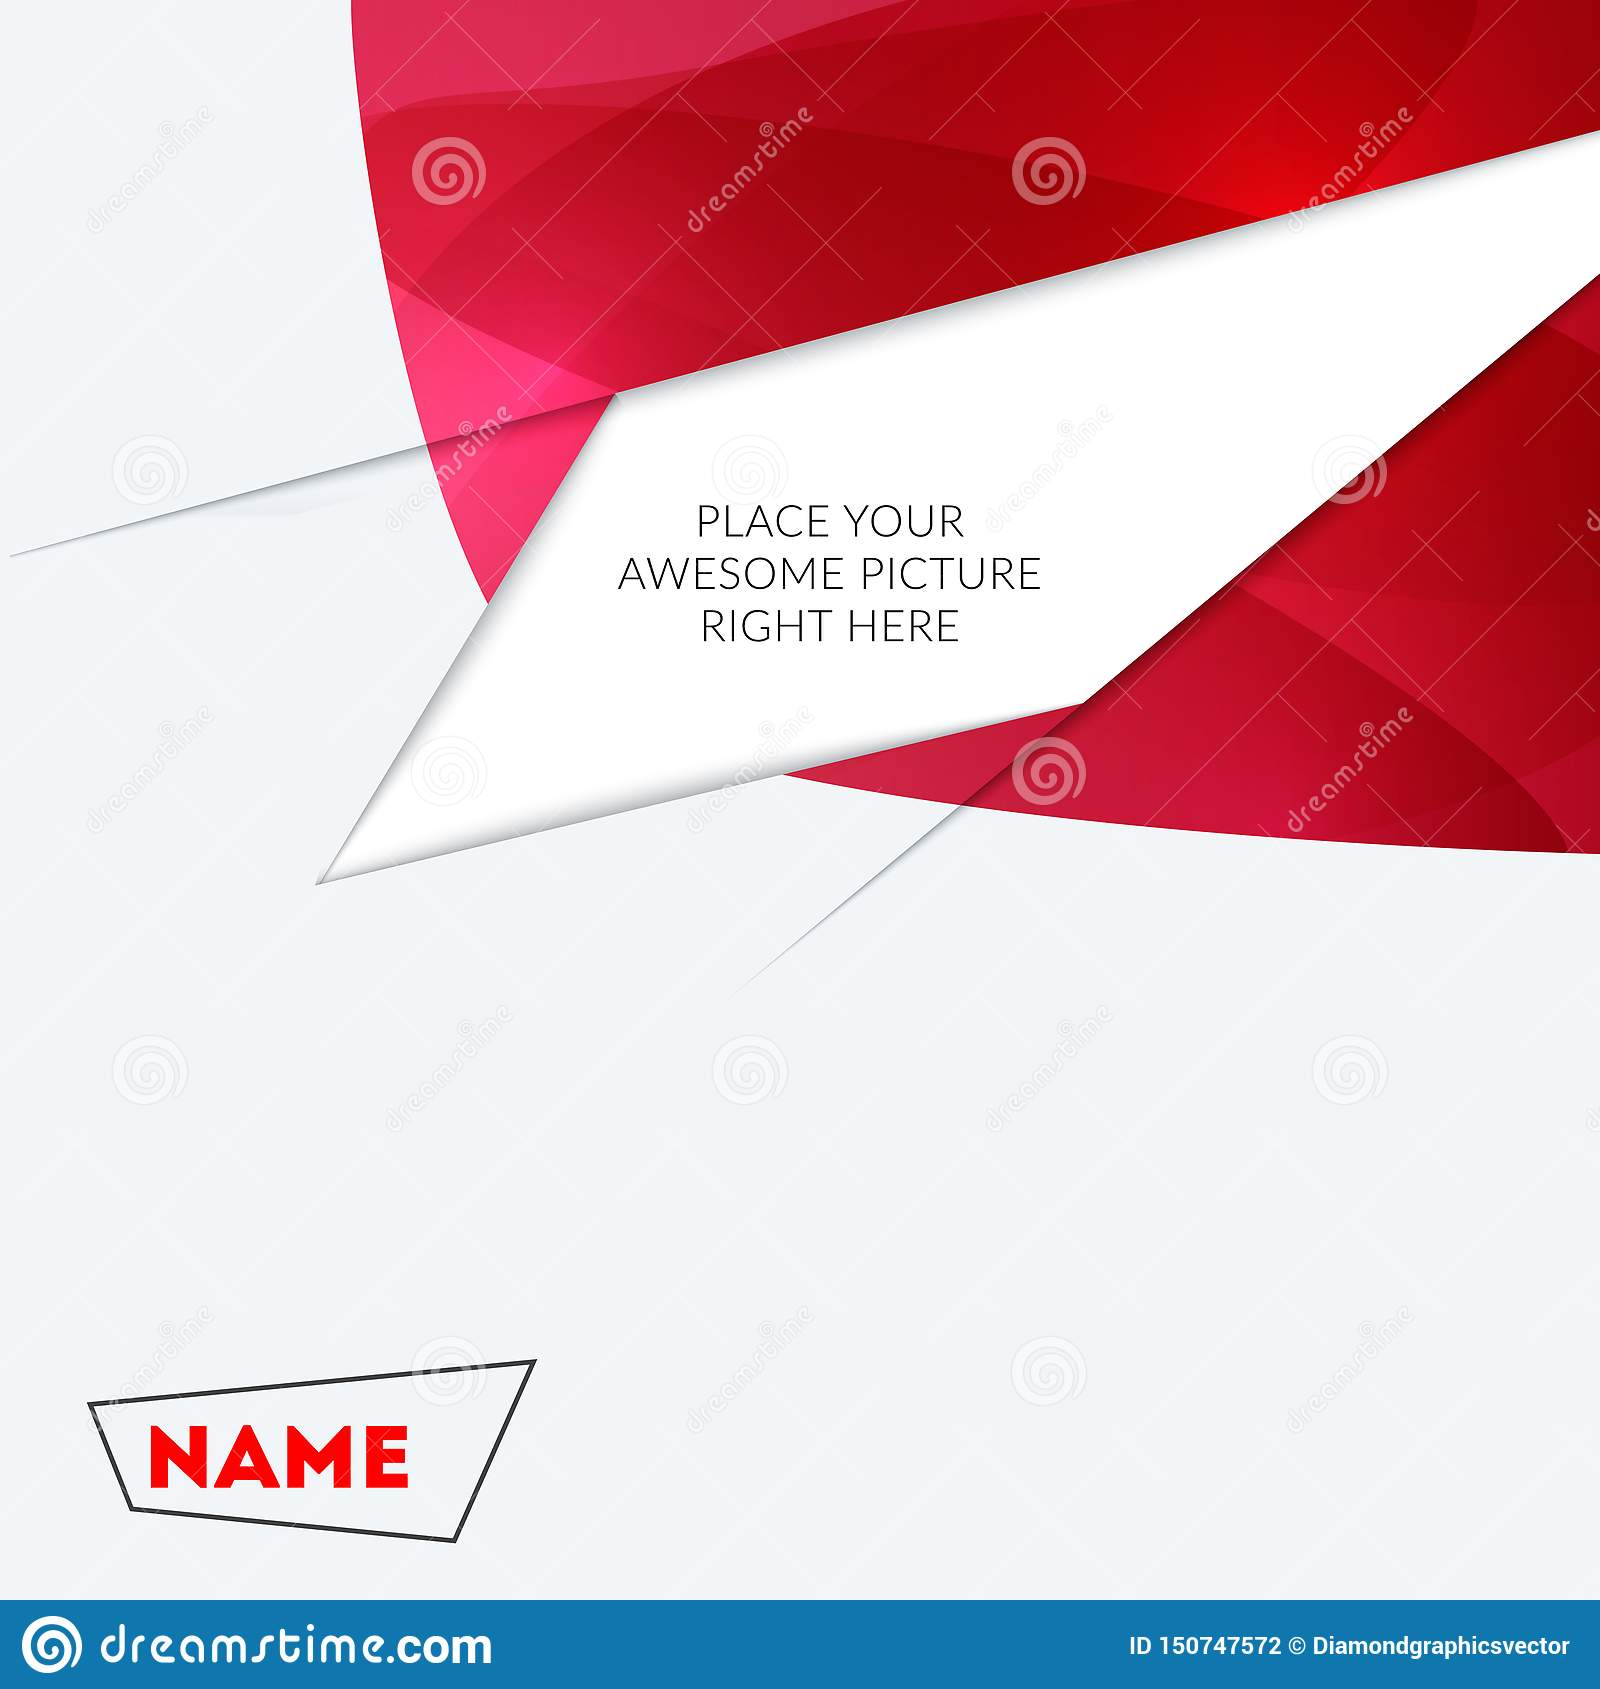 Abstract design of colourful vector elements for modern background with shapes for business branding print.